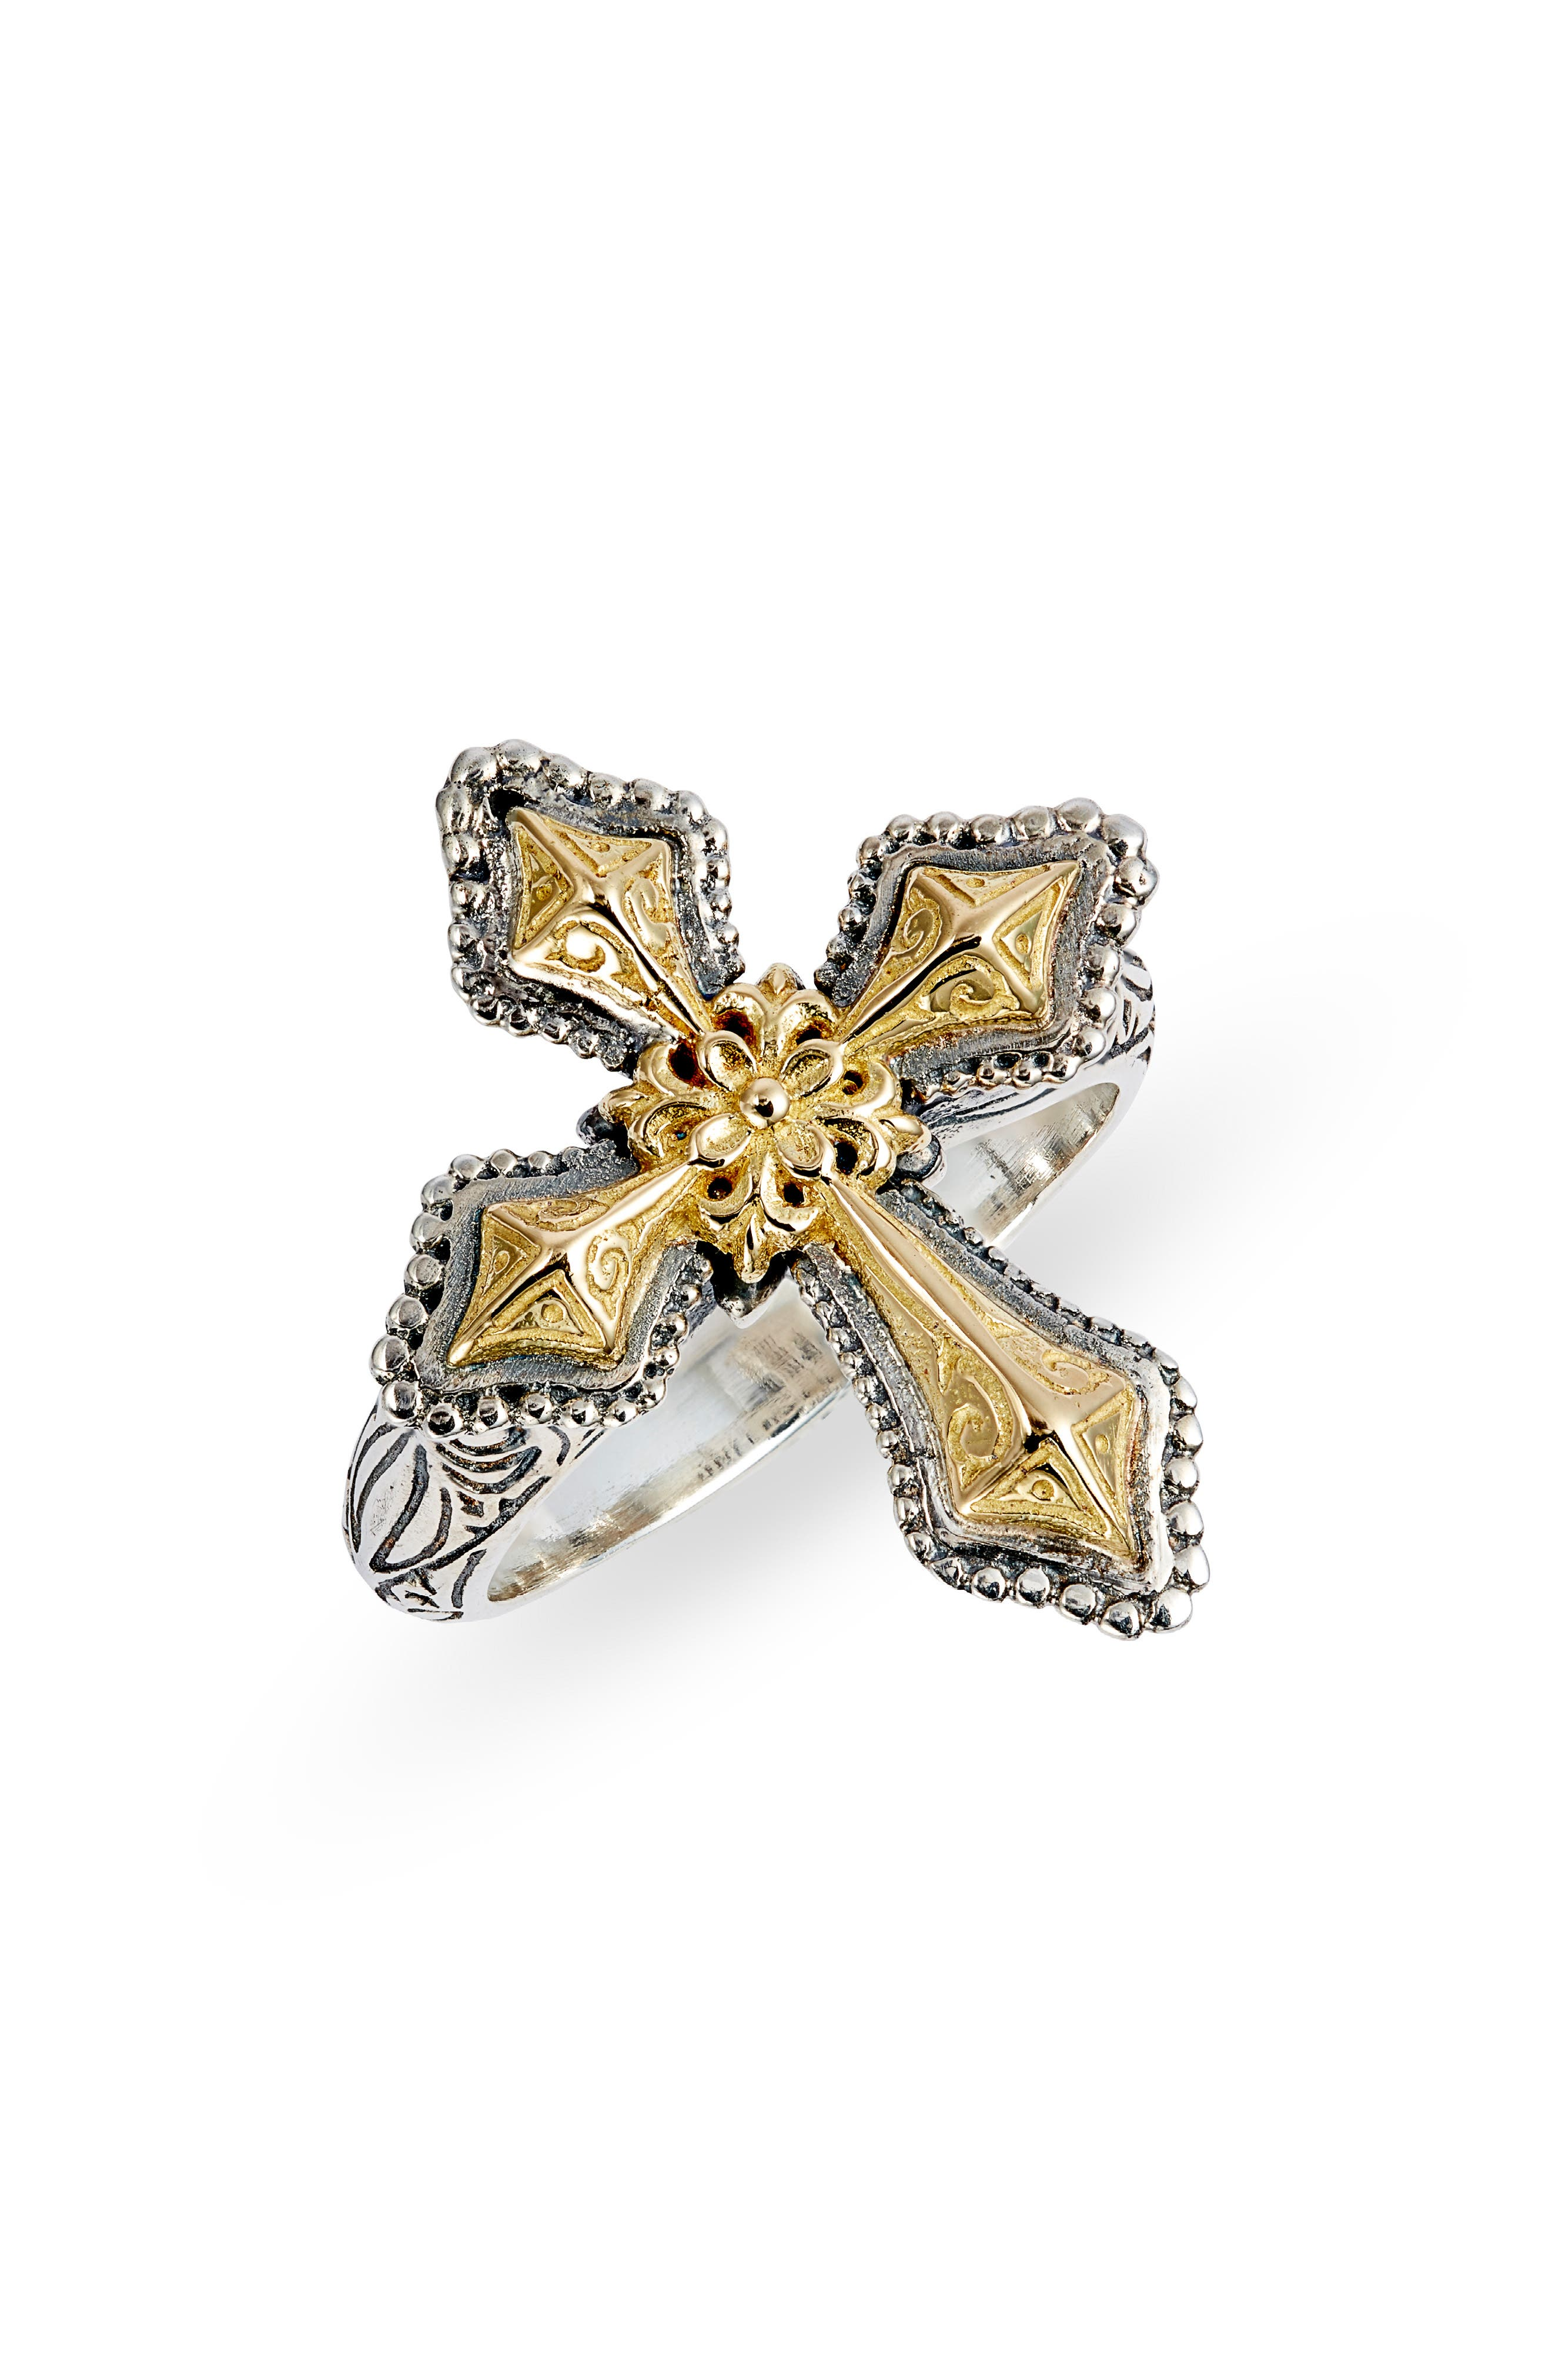 Ancient Grecian art and culture inspires this artisan-carved, heirloom-quality ring in a rich combination of sterling silver and 18-karat yellow gold. Style Name: Konstantino Kleos Cross Ring. Style Number: 5941766. Available in stores.